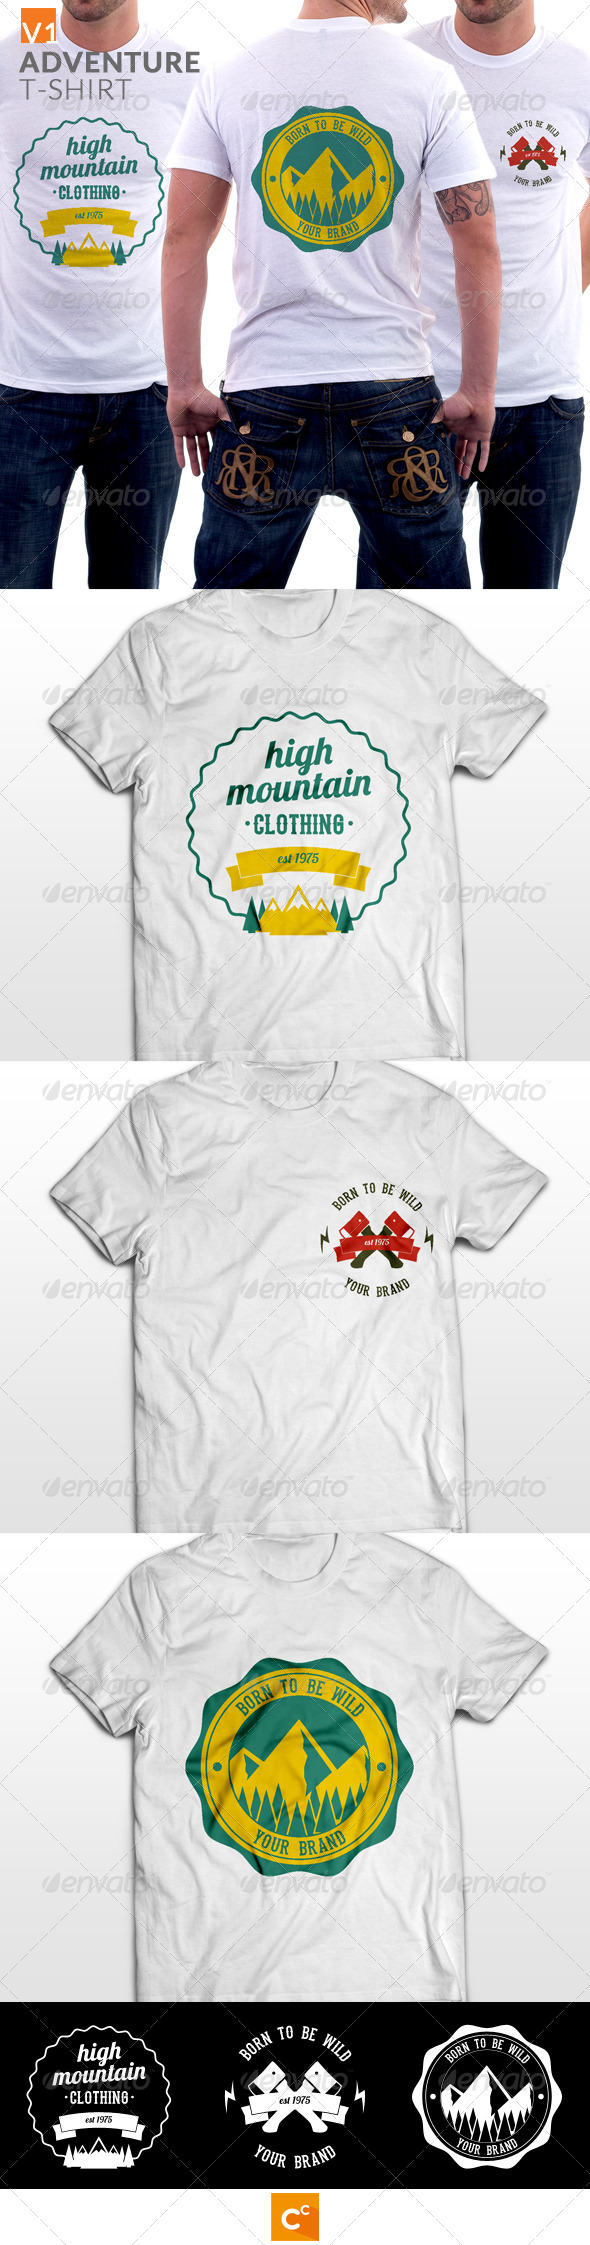 GraphicRiver Badge Adventure T-shirt 8128252